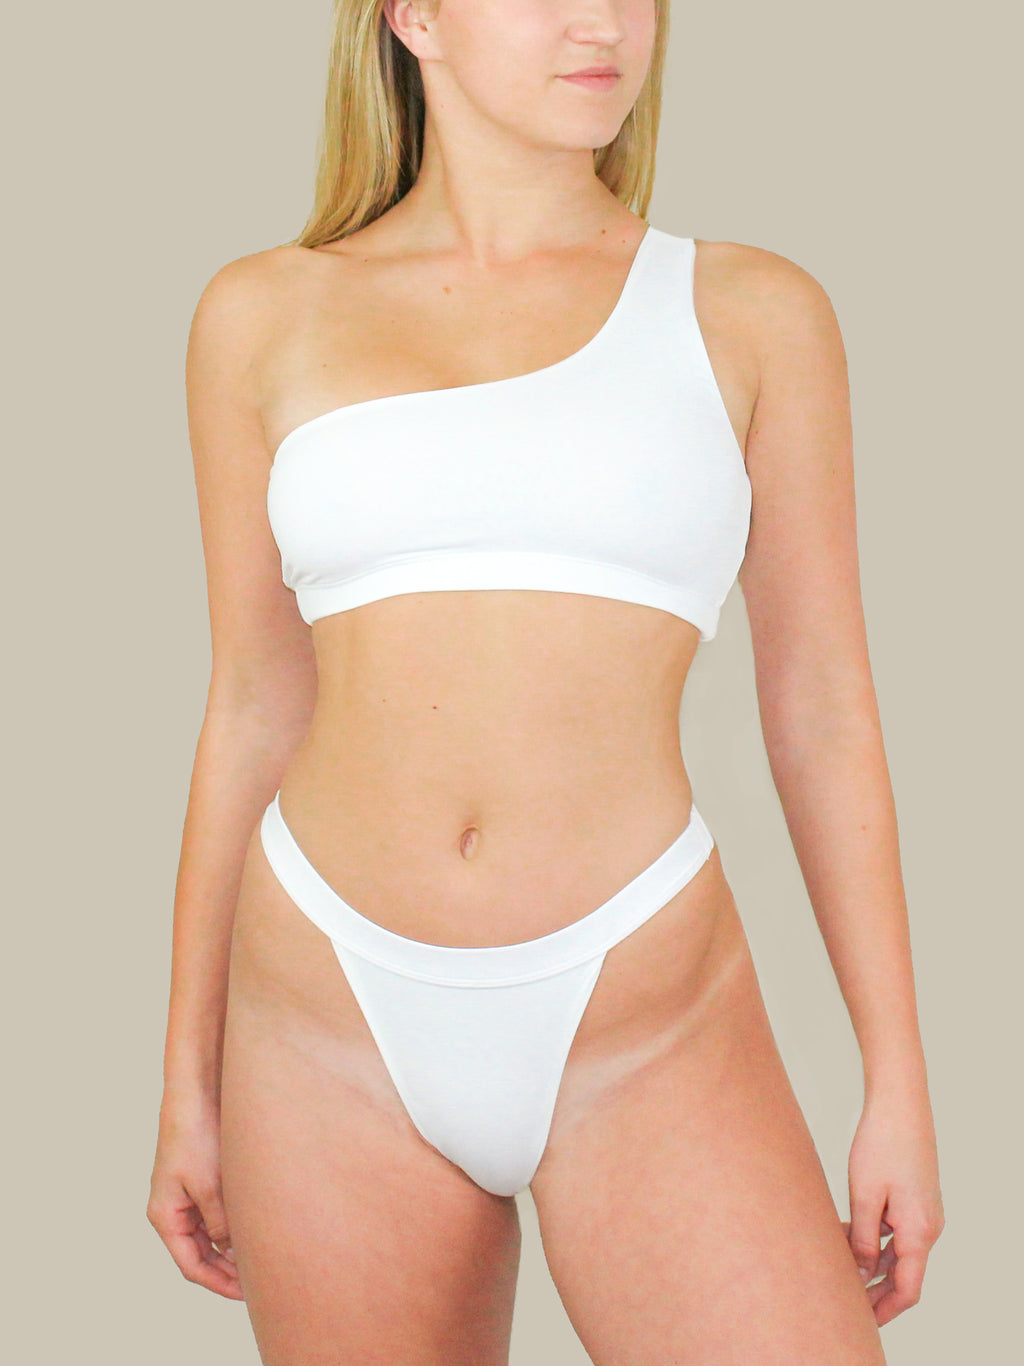 Featured in this picture are 437 Swimwear's, The Roy Bottoms. These bikini bottoms feature a seamless white fabric, high-cut leg, and double layered fabric.